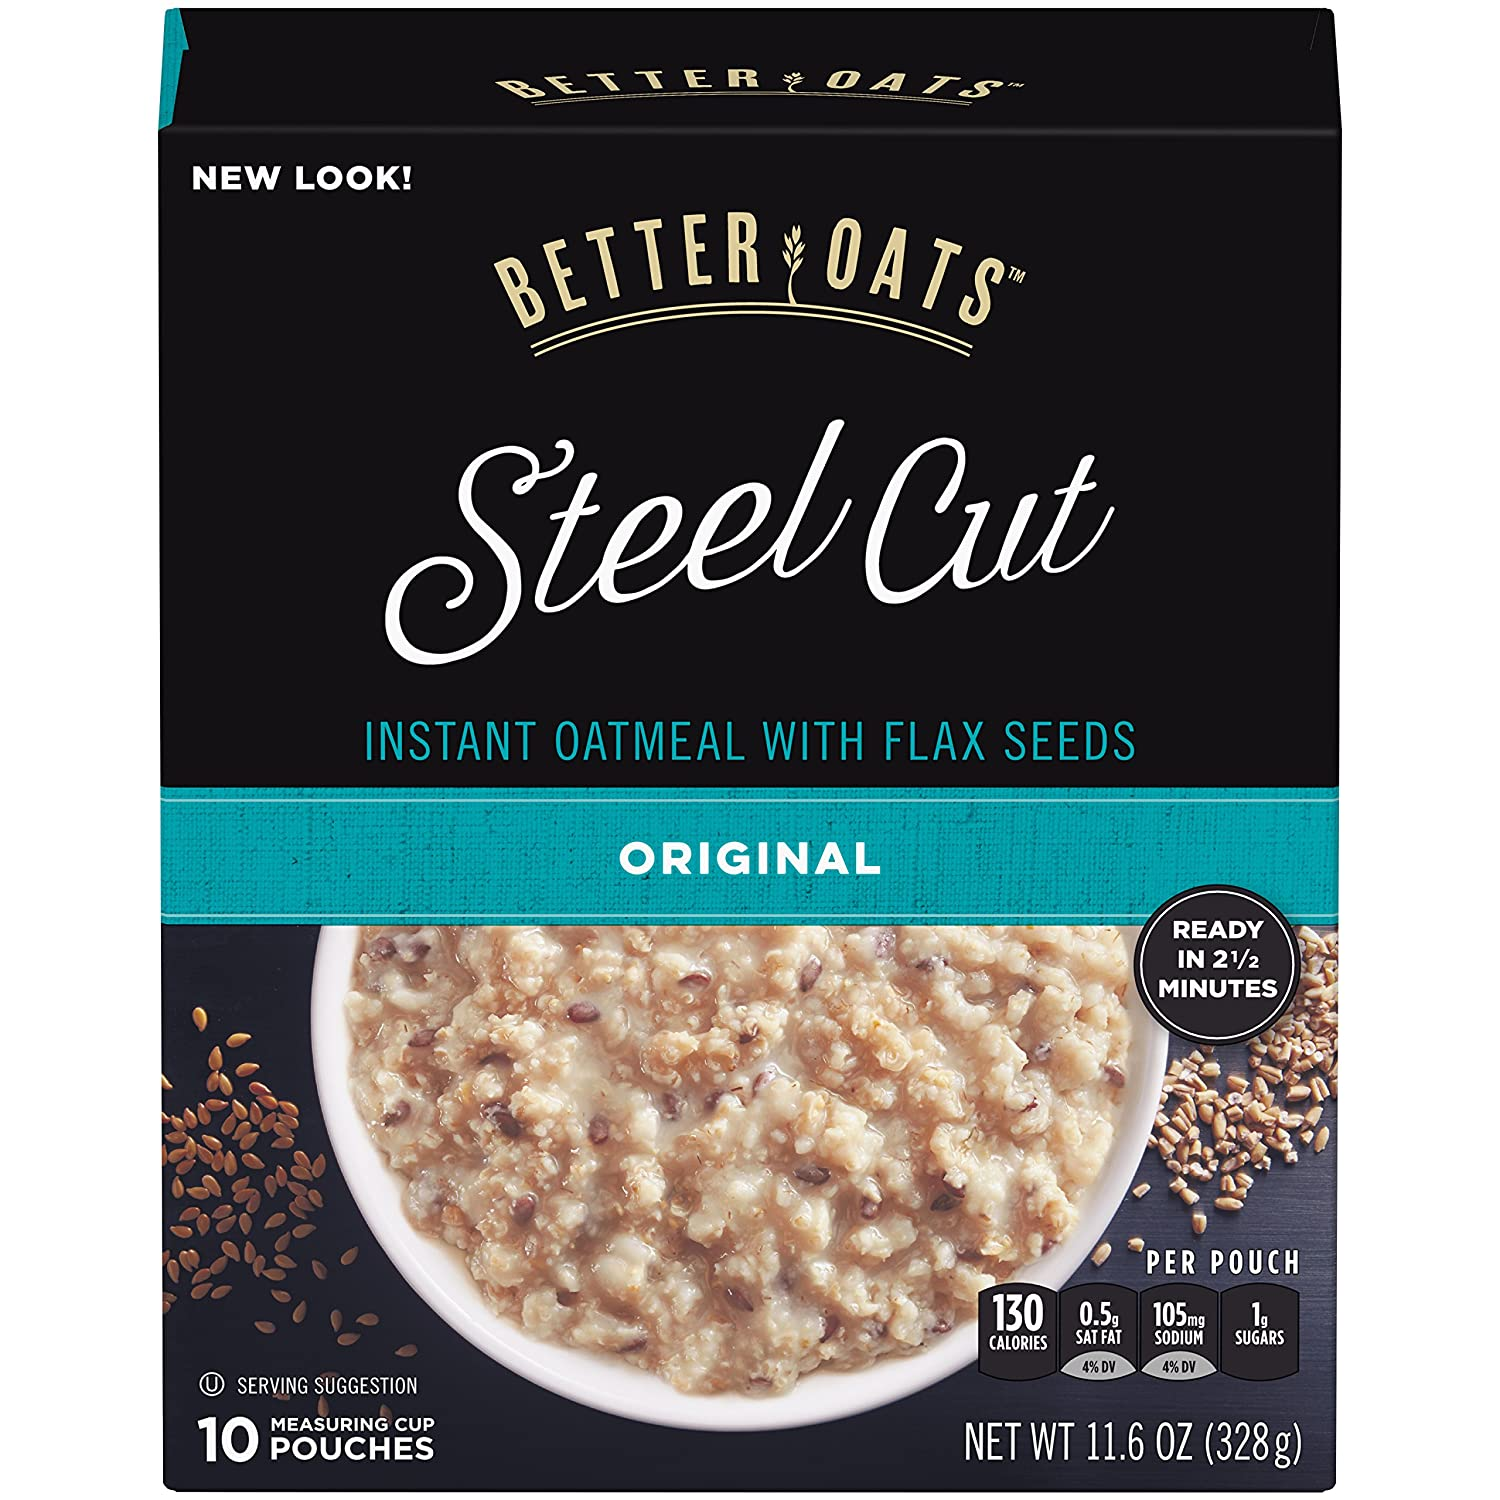 Better Oats Steel Cut Instant Oatmeal with Flax Seeds, Original, 11.6 Ounce (Pack of 6)